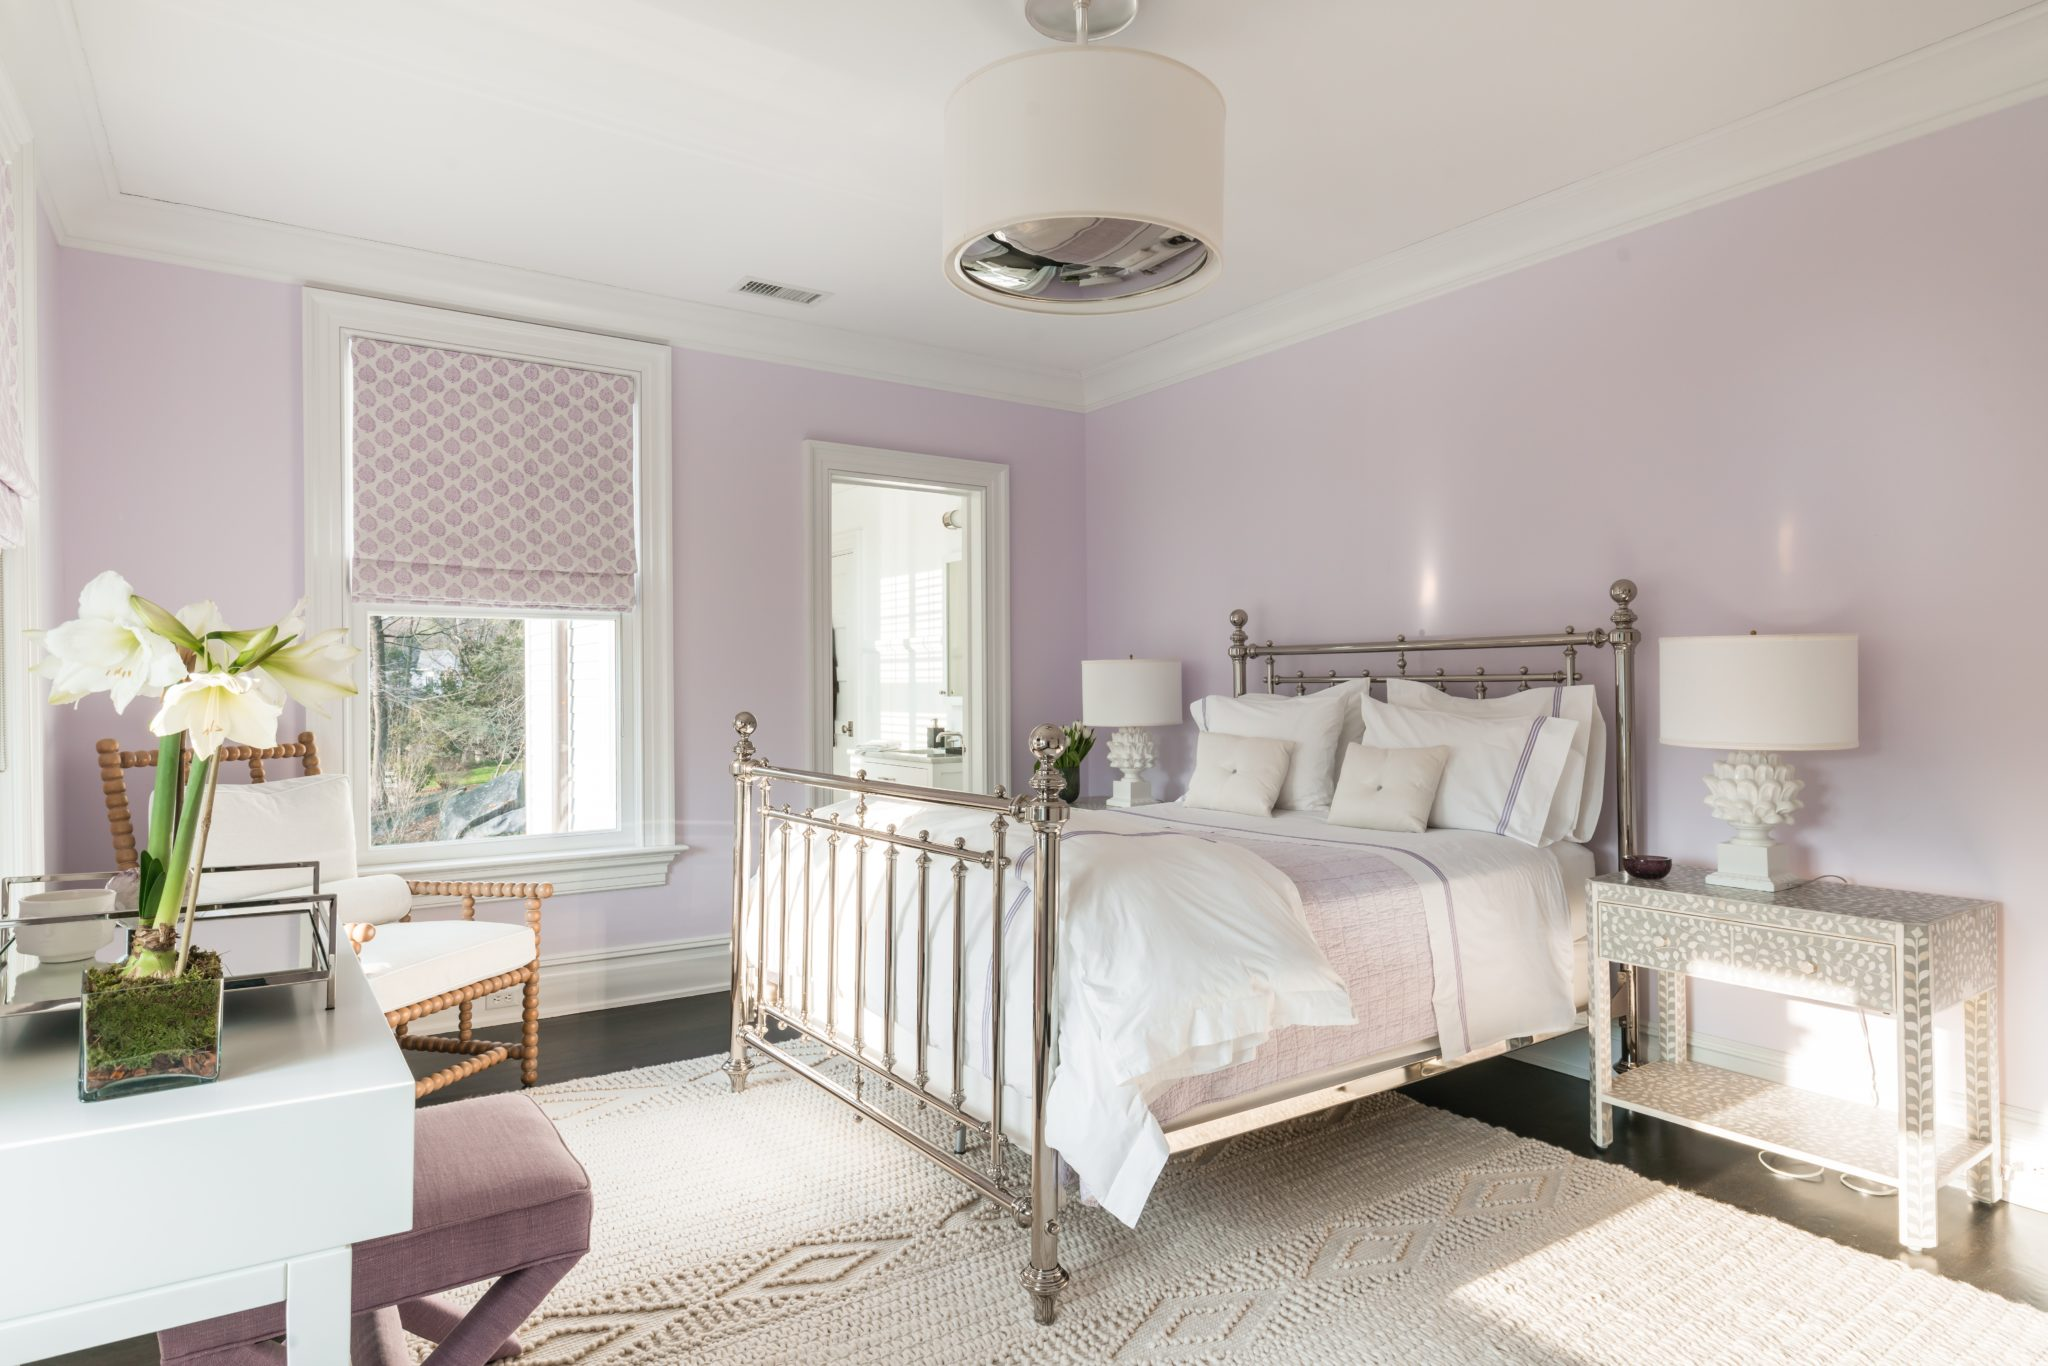 Refined Guest Bedroom, Lavender, Brass Bed, Shaded Chandelier, Geometric Shades by Alisberg Parker Architects